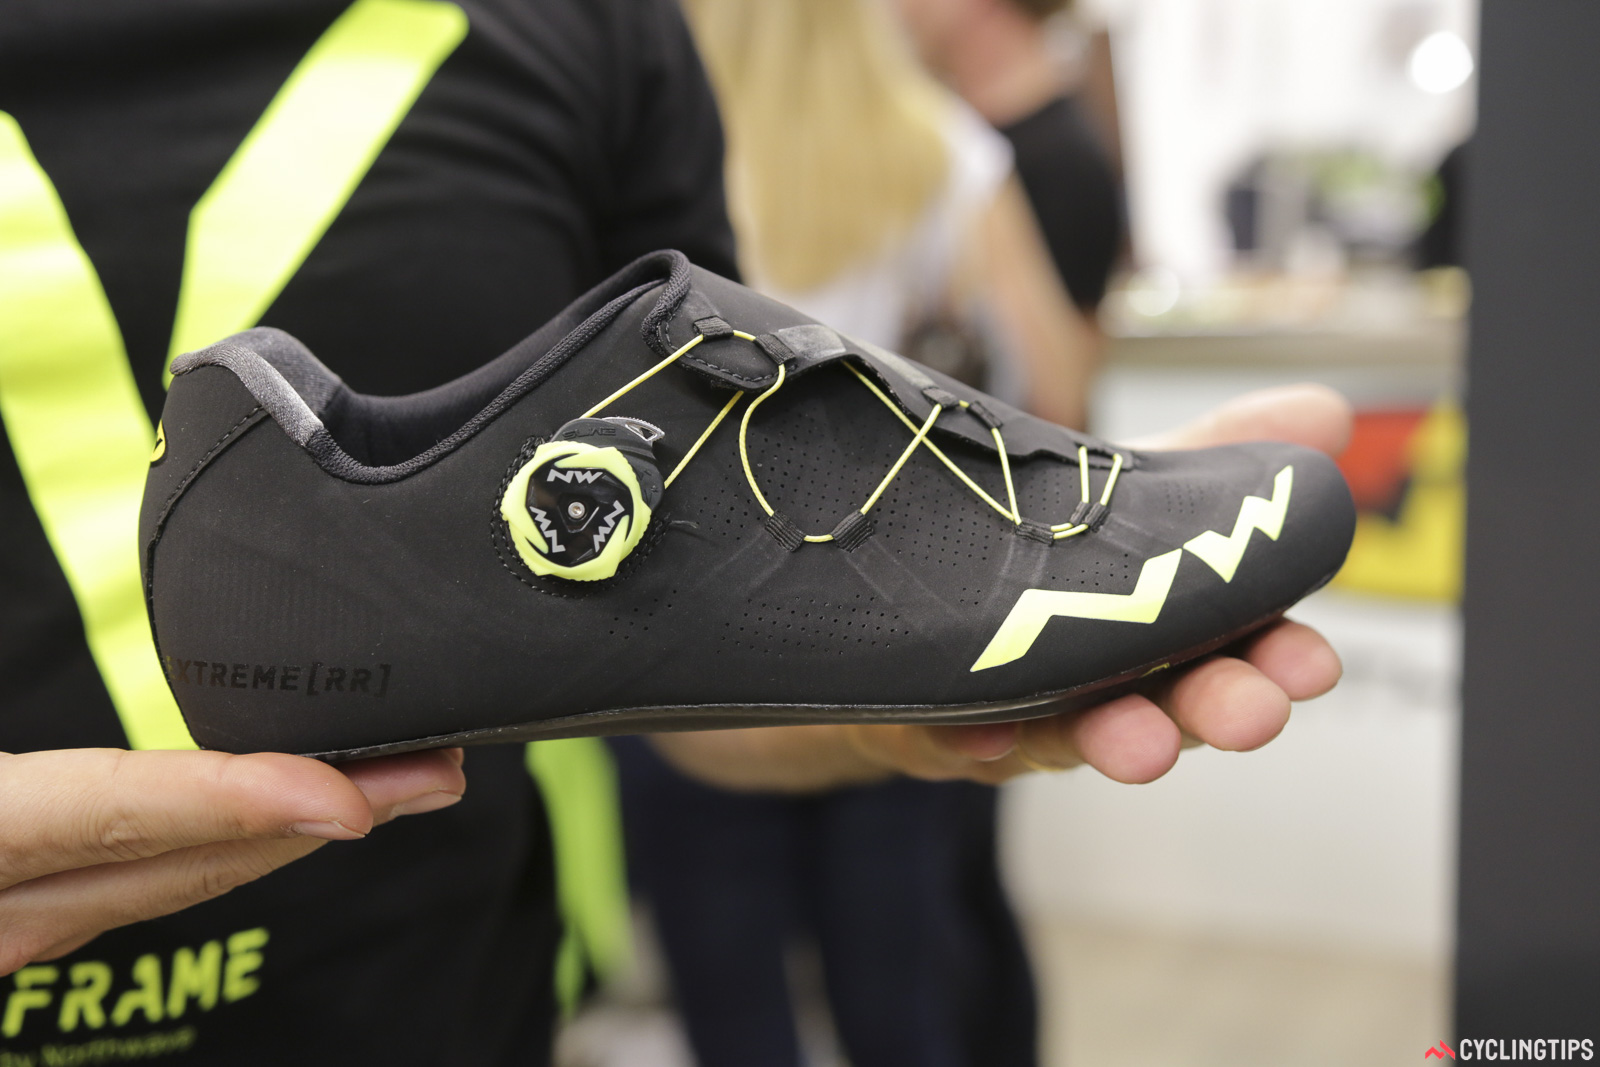 While at the NorthWave booth we spotted the new 'Extreme RR'. Sitting at a 15/15 for sole stiffness, this top-tier NorthWave shoe uses a single ratchet mechanism to wrap the shoe around the foot. The mechanism actually pulls the wire from both directions for even tightening, while the material loops are subtly reinforced along the soft upper. Two foot beds are included to change the volume of the shoe, while the wrap-around nature of the upper is said solve the need for width choices. They're claimed at 220g a shoe (EU42) and will retail for €369. Photo: David Rome.